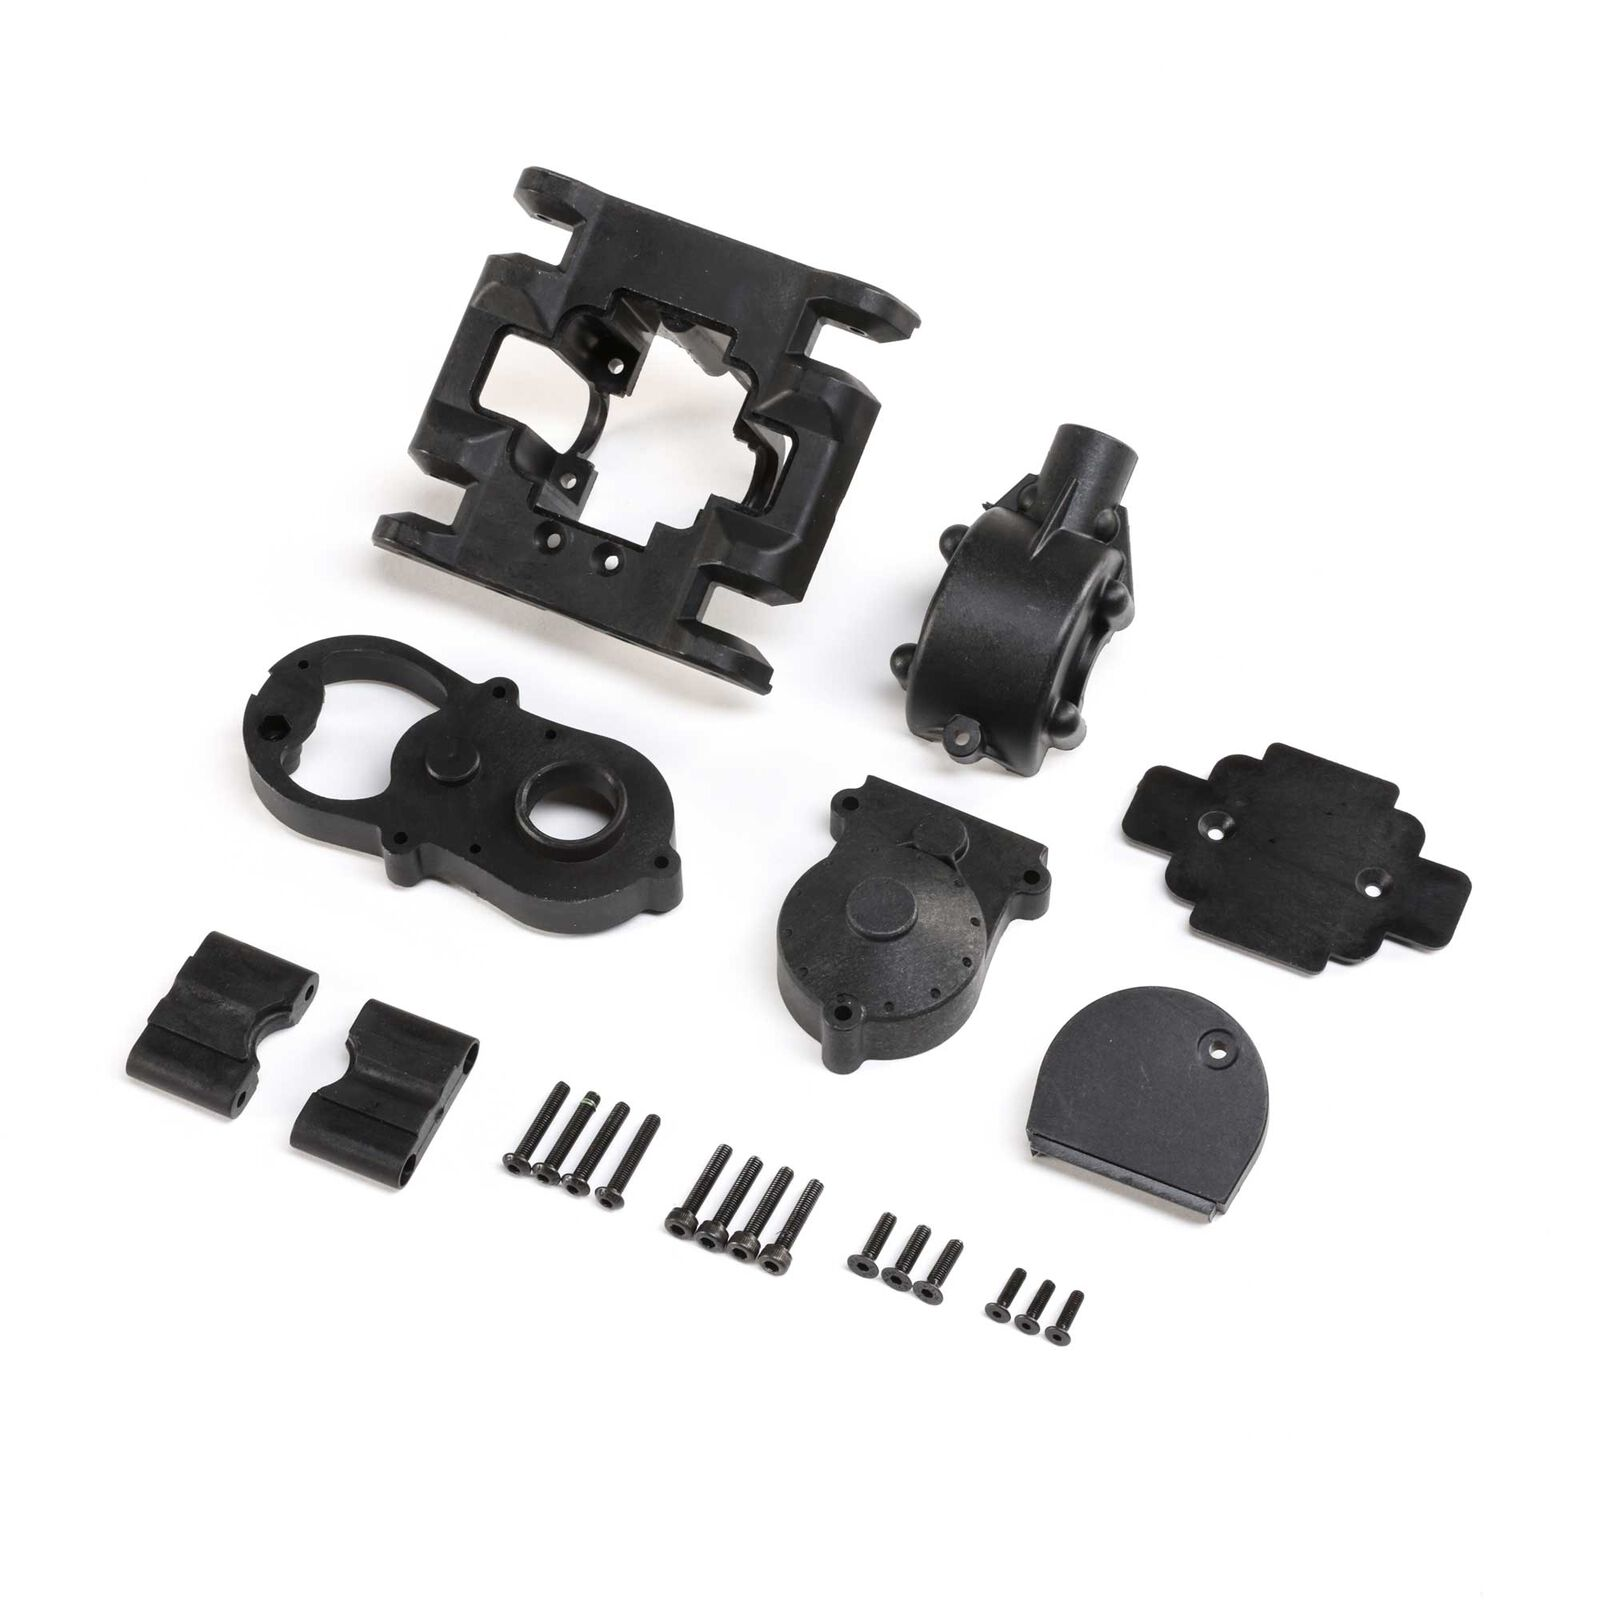 Gearbox Housing Set with Covers: LMT